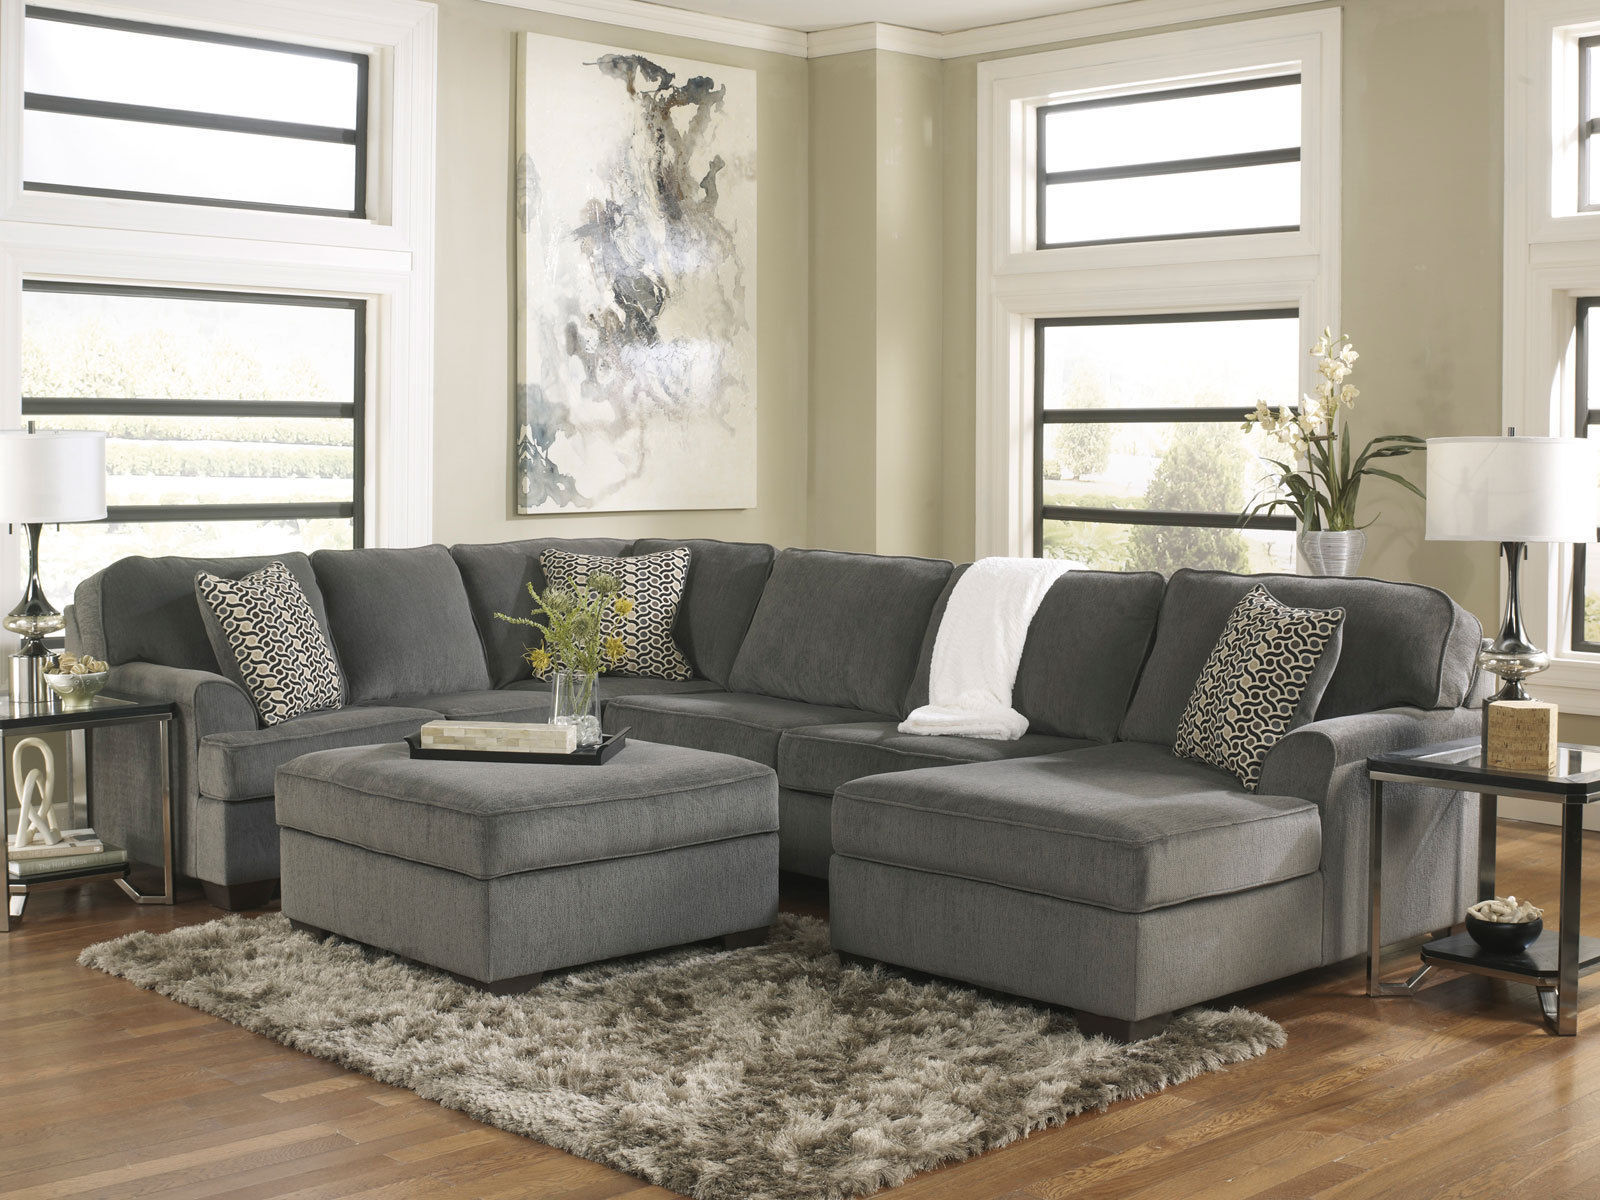 Sole oversized modern gray fabric sofa couch sectional set for Modern living room sofa